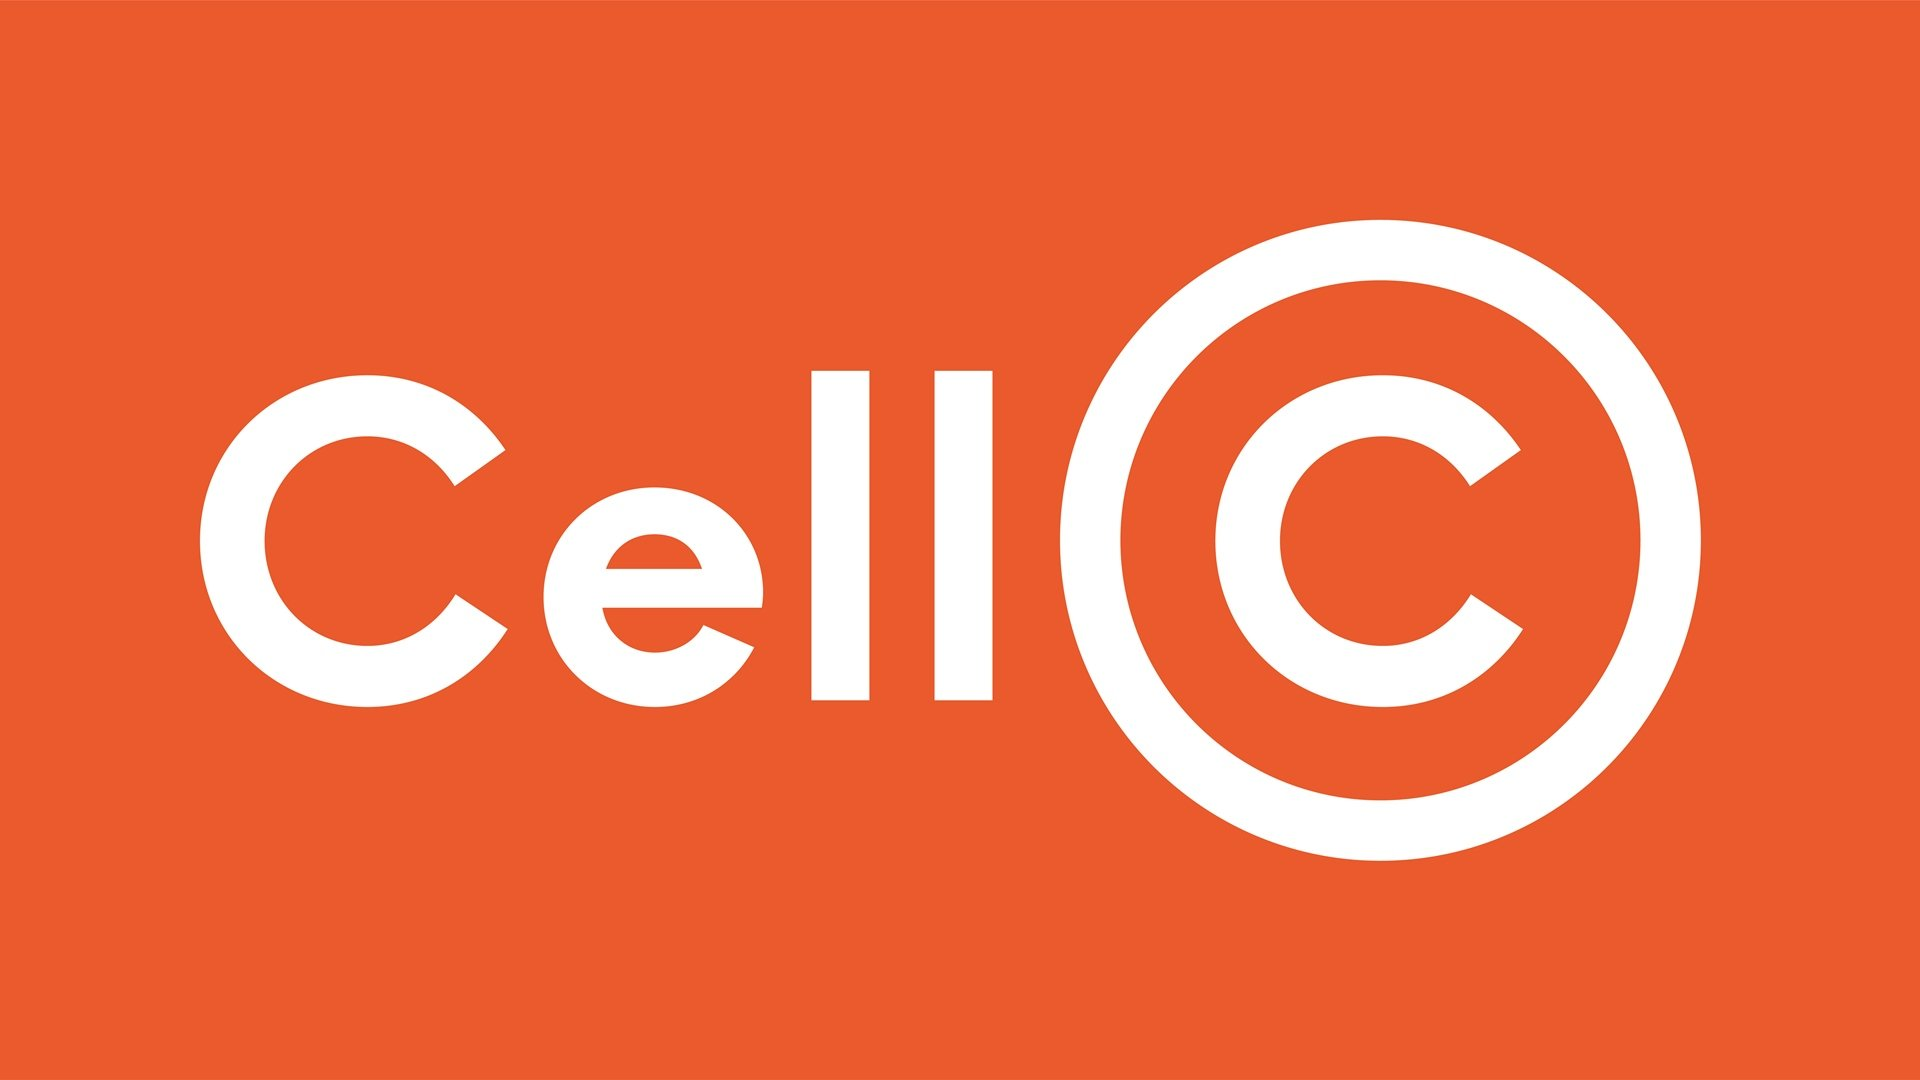 cell-c-south-africa